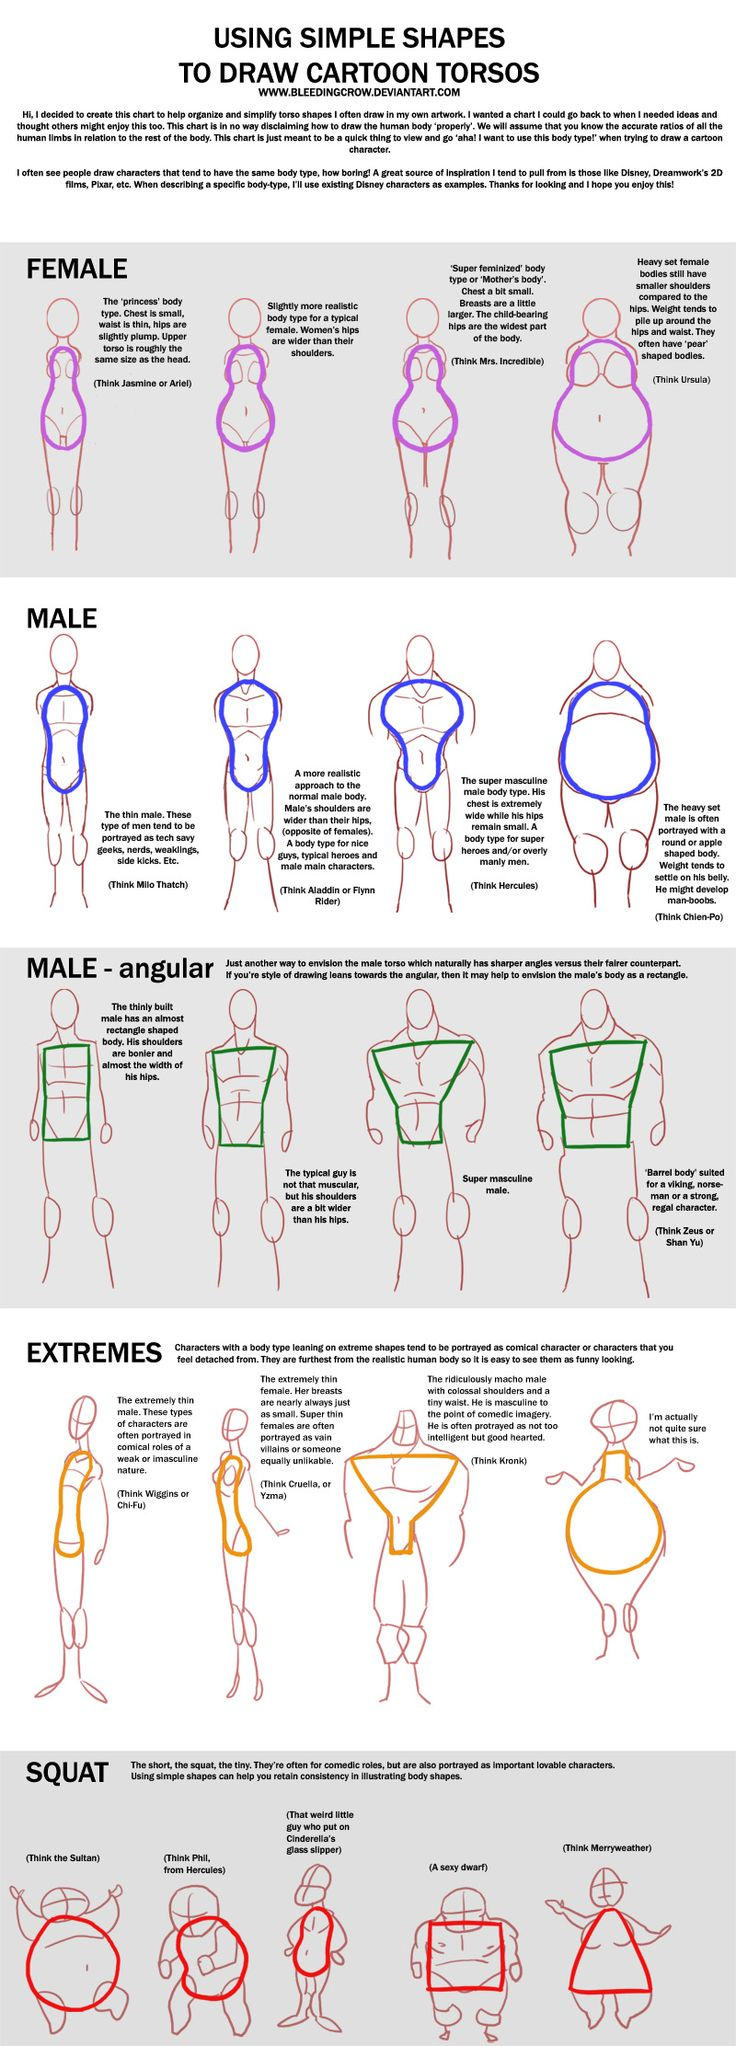 http://fc04.deviantart.net/fs70/f/2011/254/a/5/chart___cartoon_torso_by_bleedingcrow-d49i953.jpg